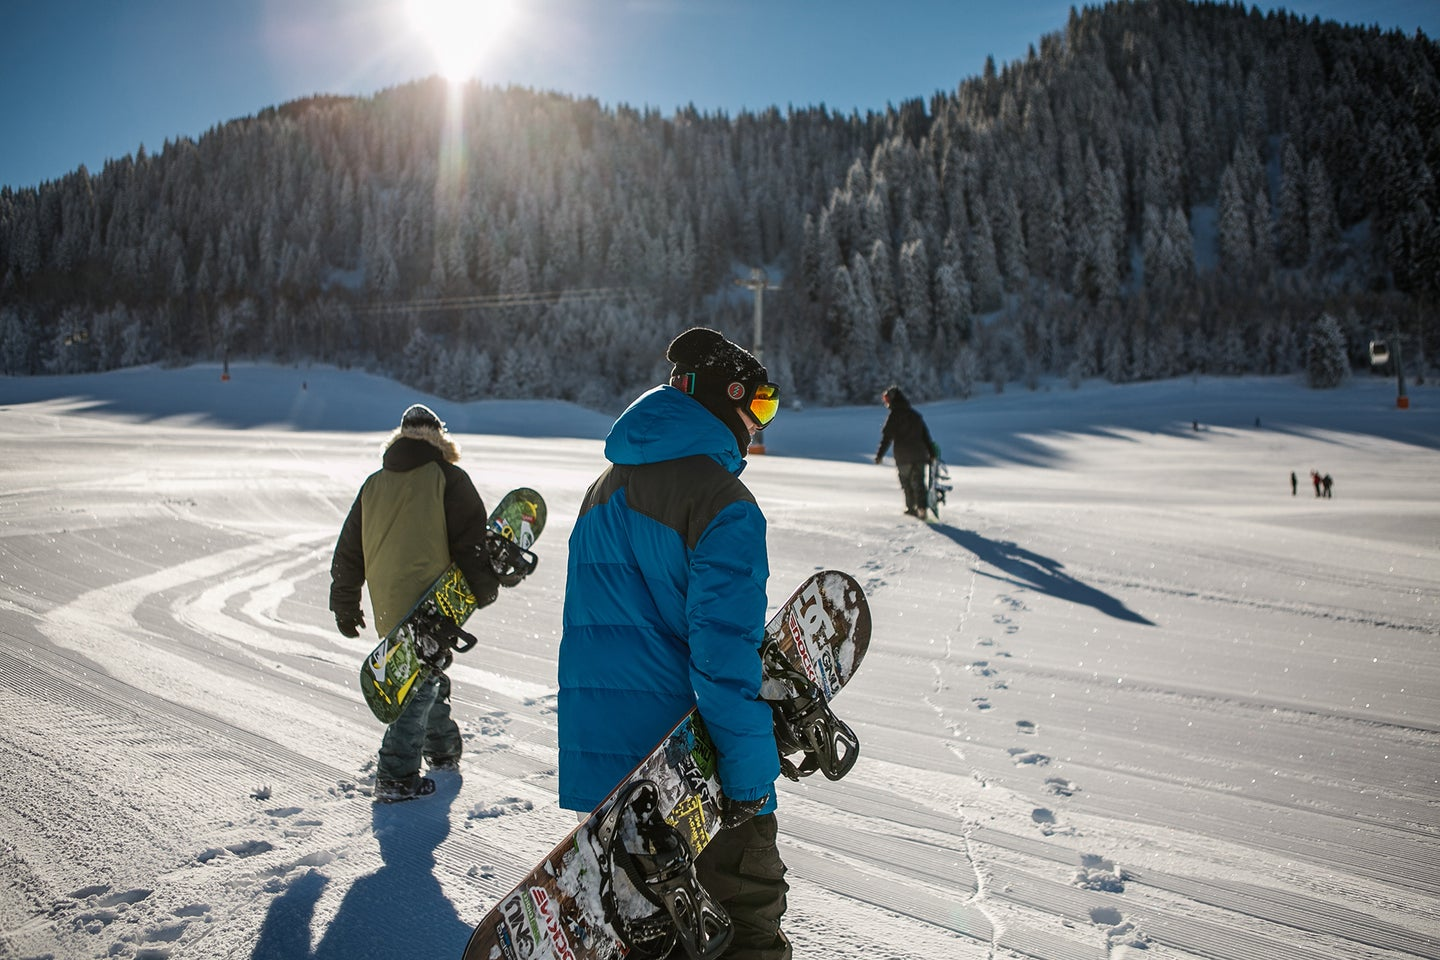 three people with snowboards walking on a snowy moutain